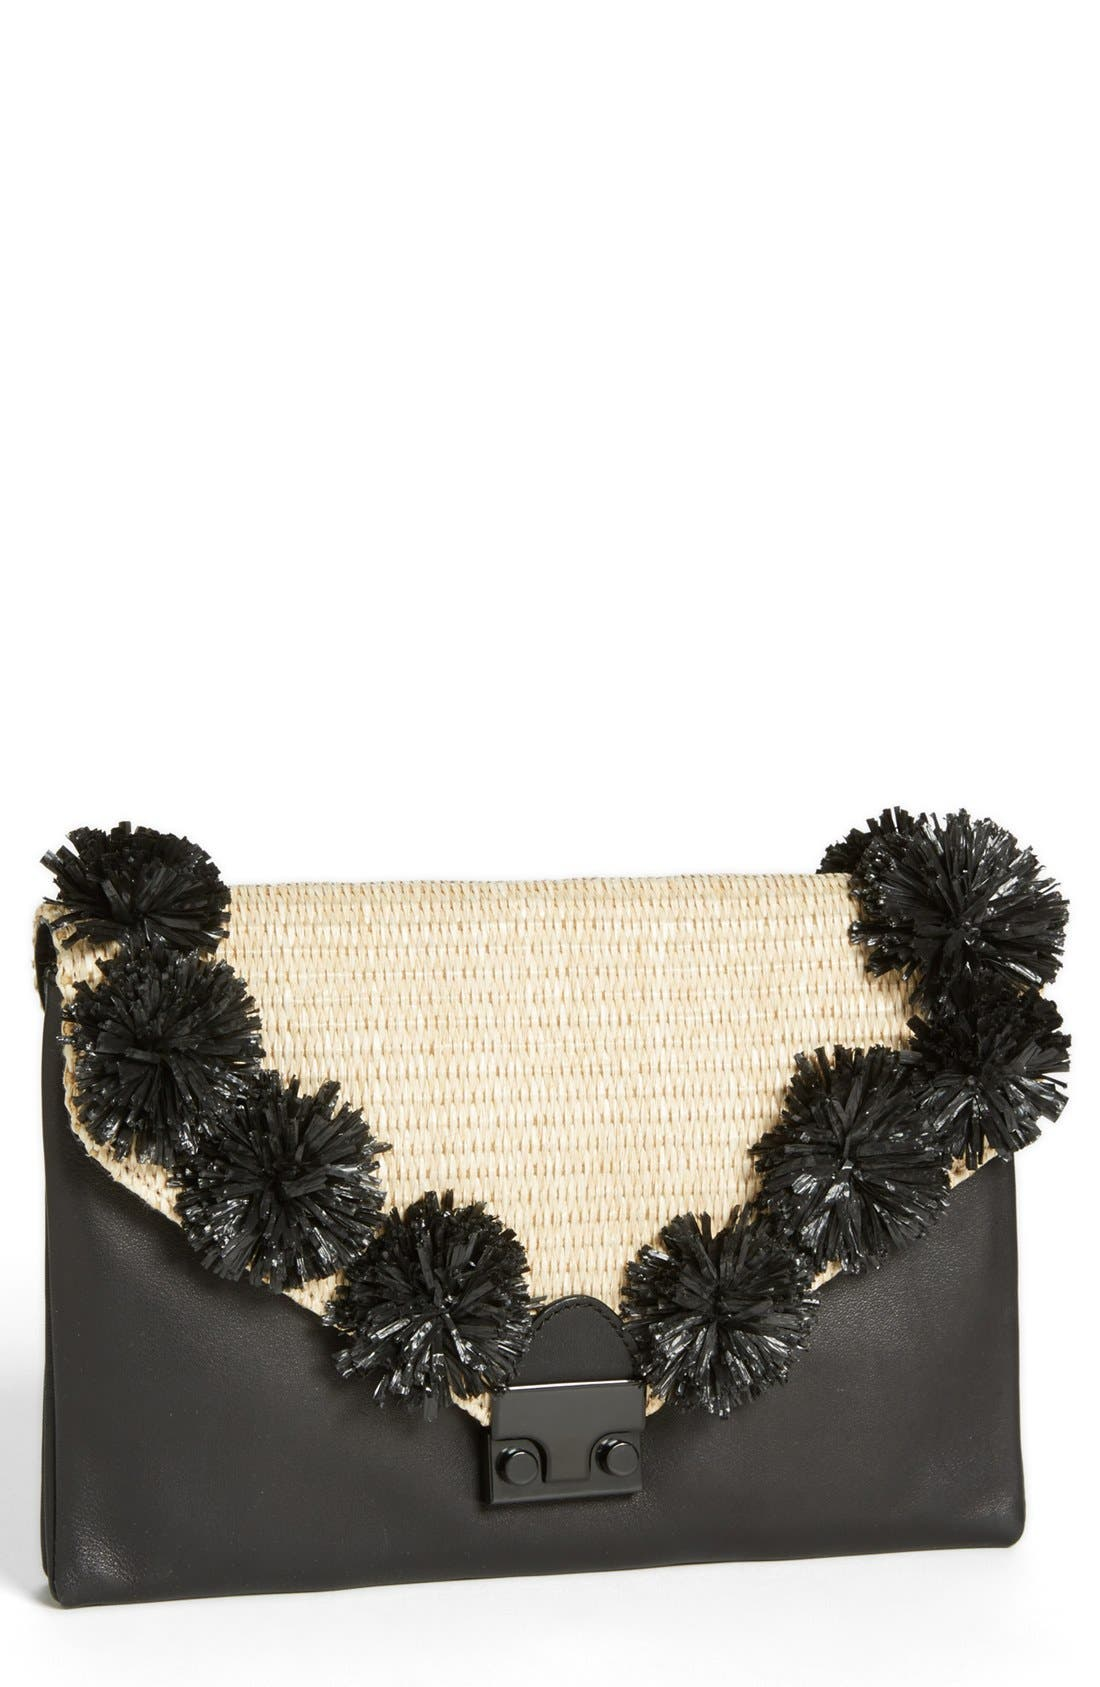 Alternate Image 1 Selected - Loeffler Randall 'Lock' Clutch